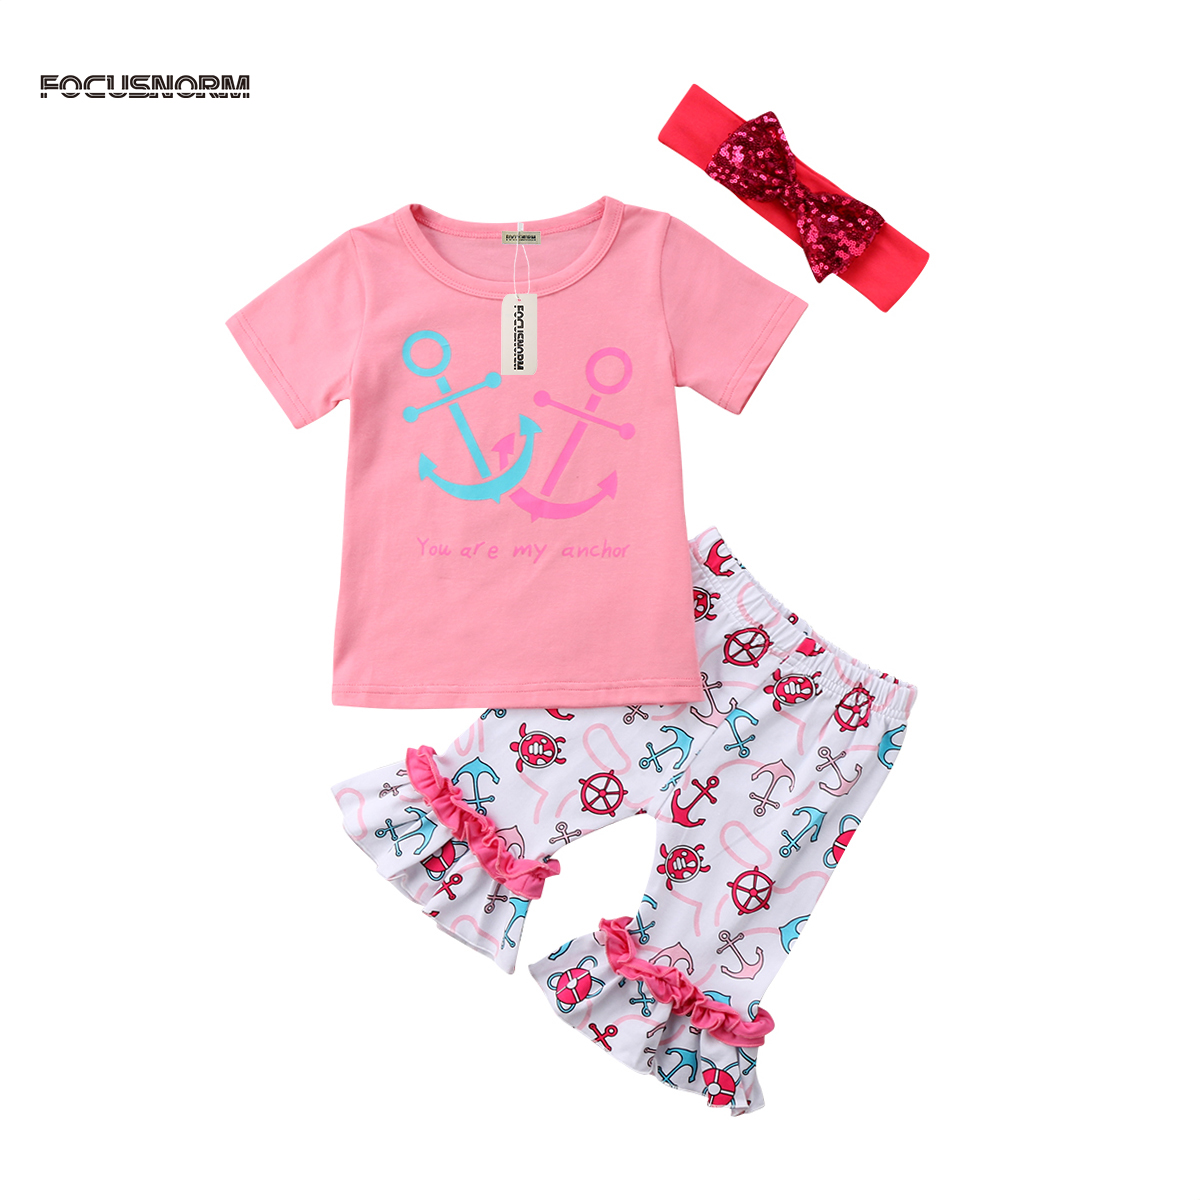 Toddler Kids Baby Girls Cotton Short Sleeves Top T-shirt + Ruffle Pants Leggings+Headband Outfits Clothes Summer